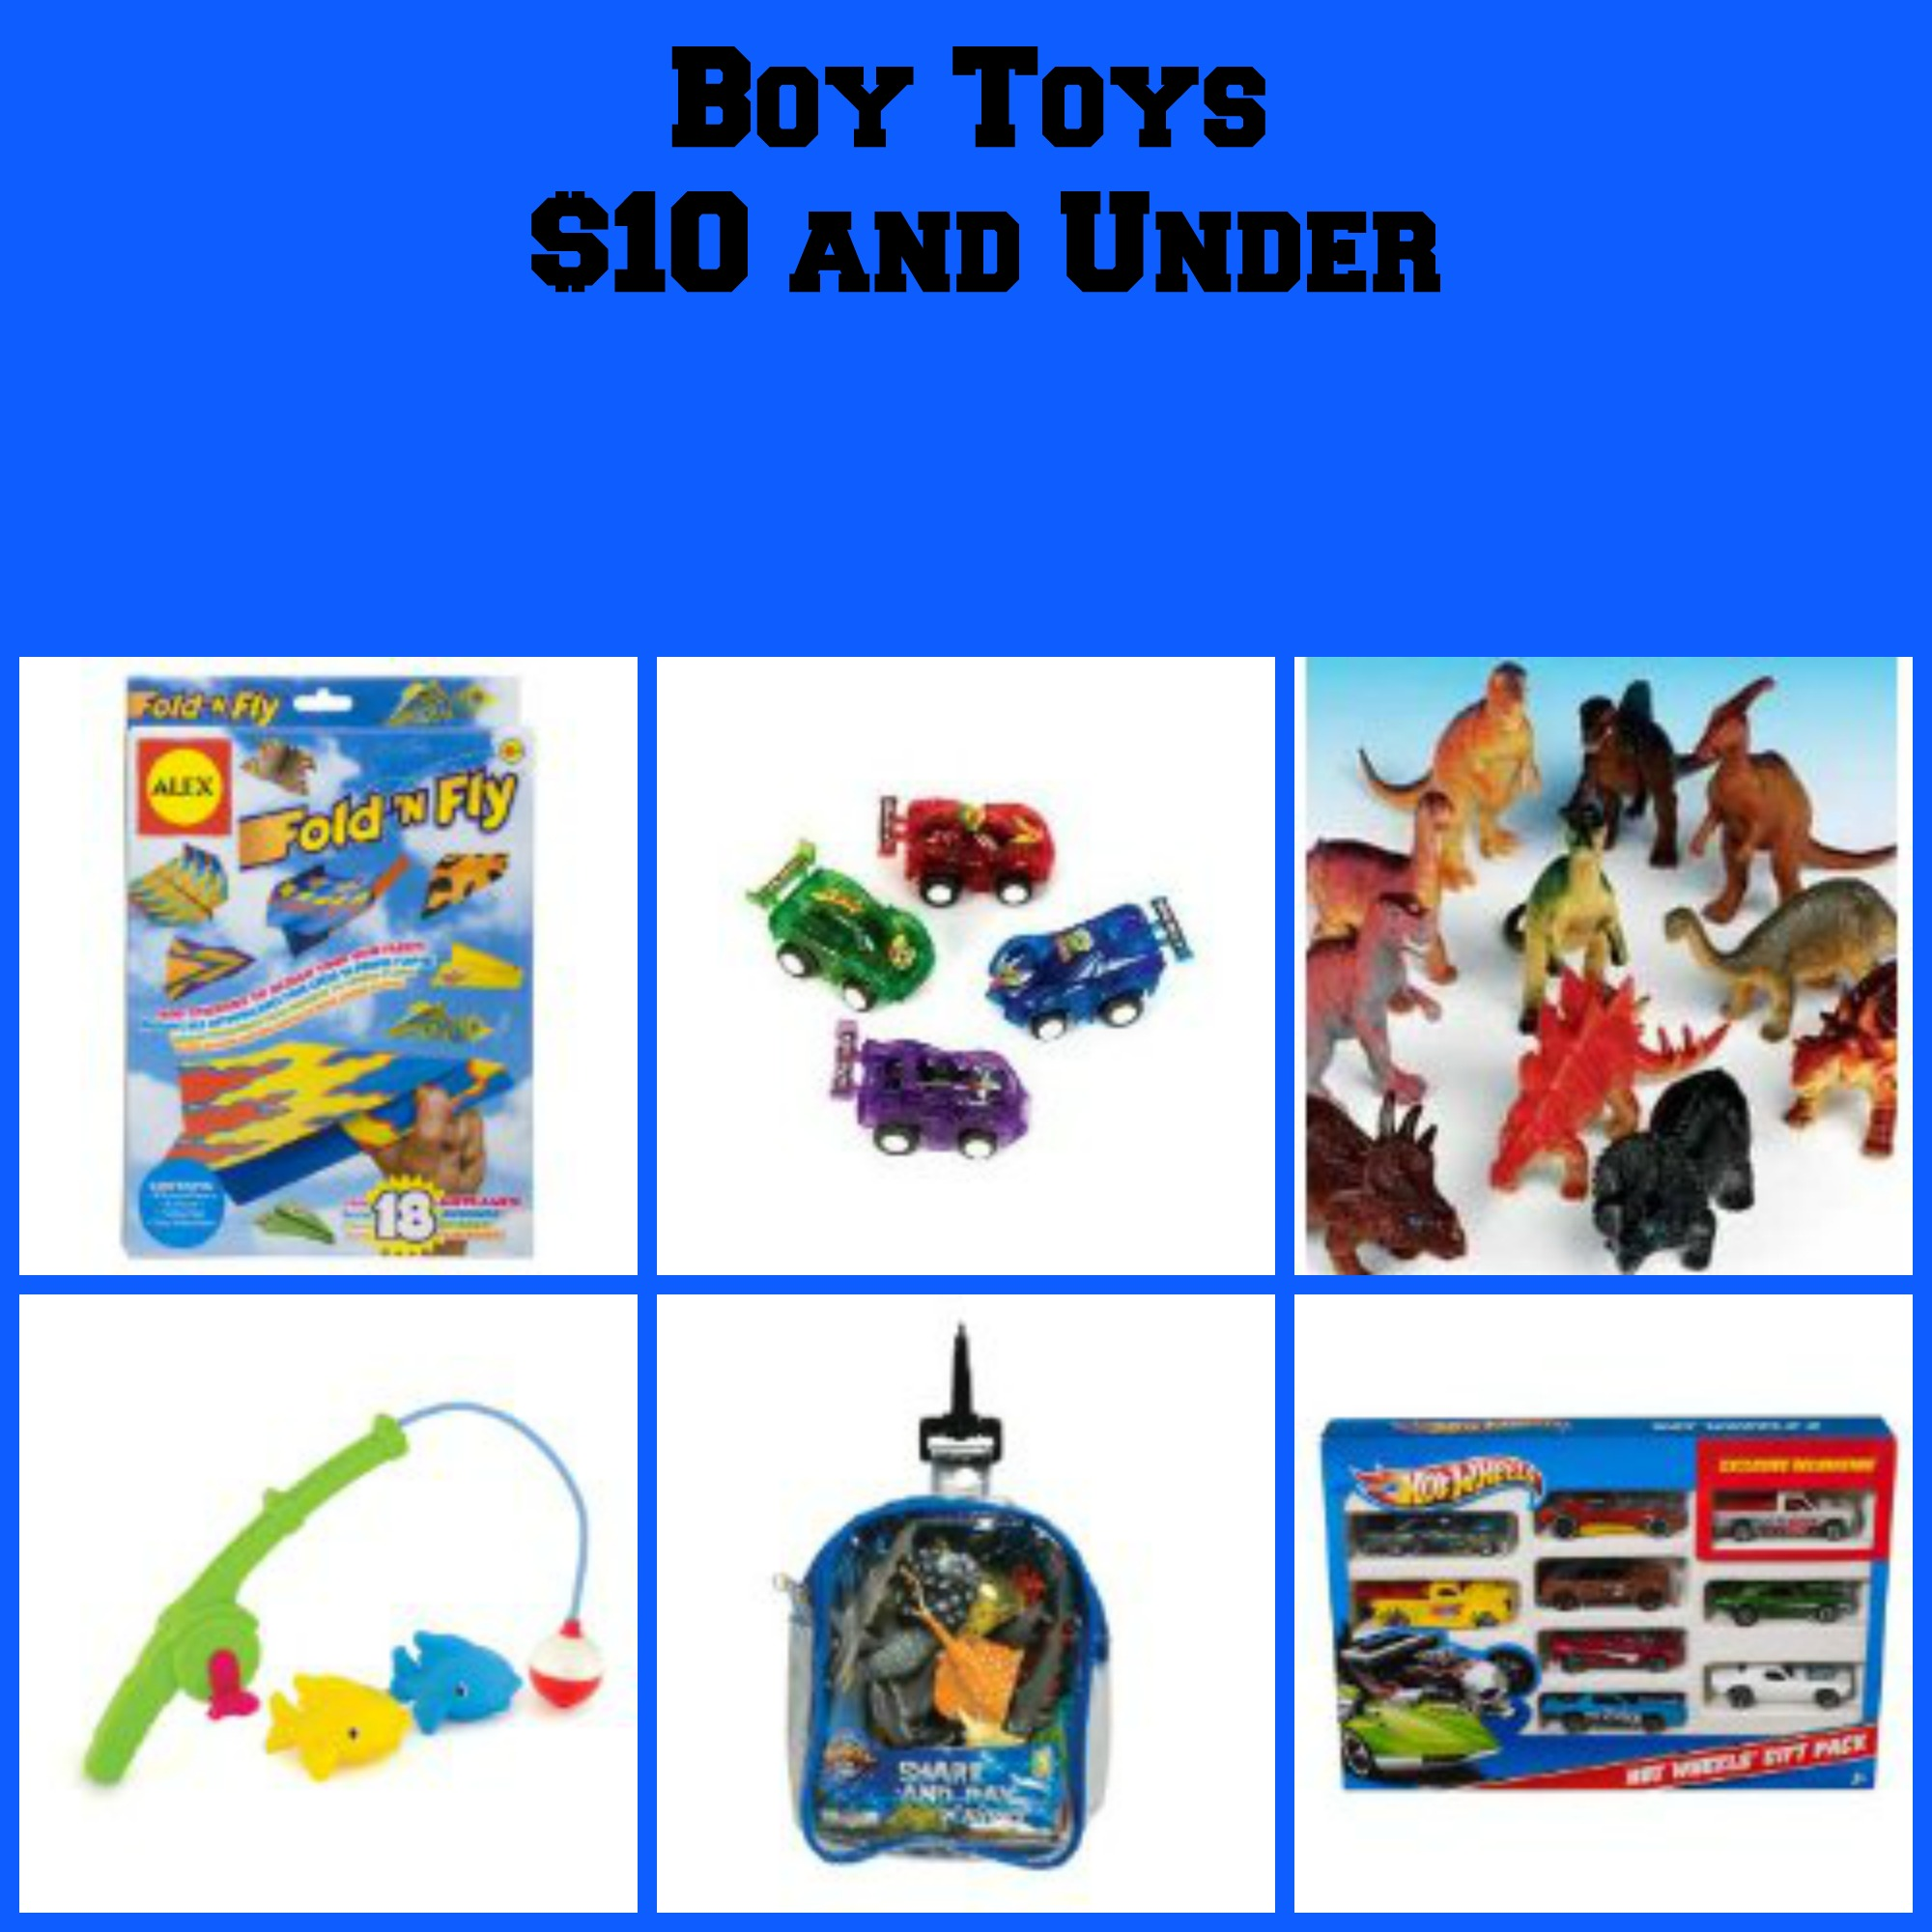 Toys For Boys Product : Boy toys and under bb product reviews